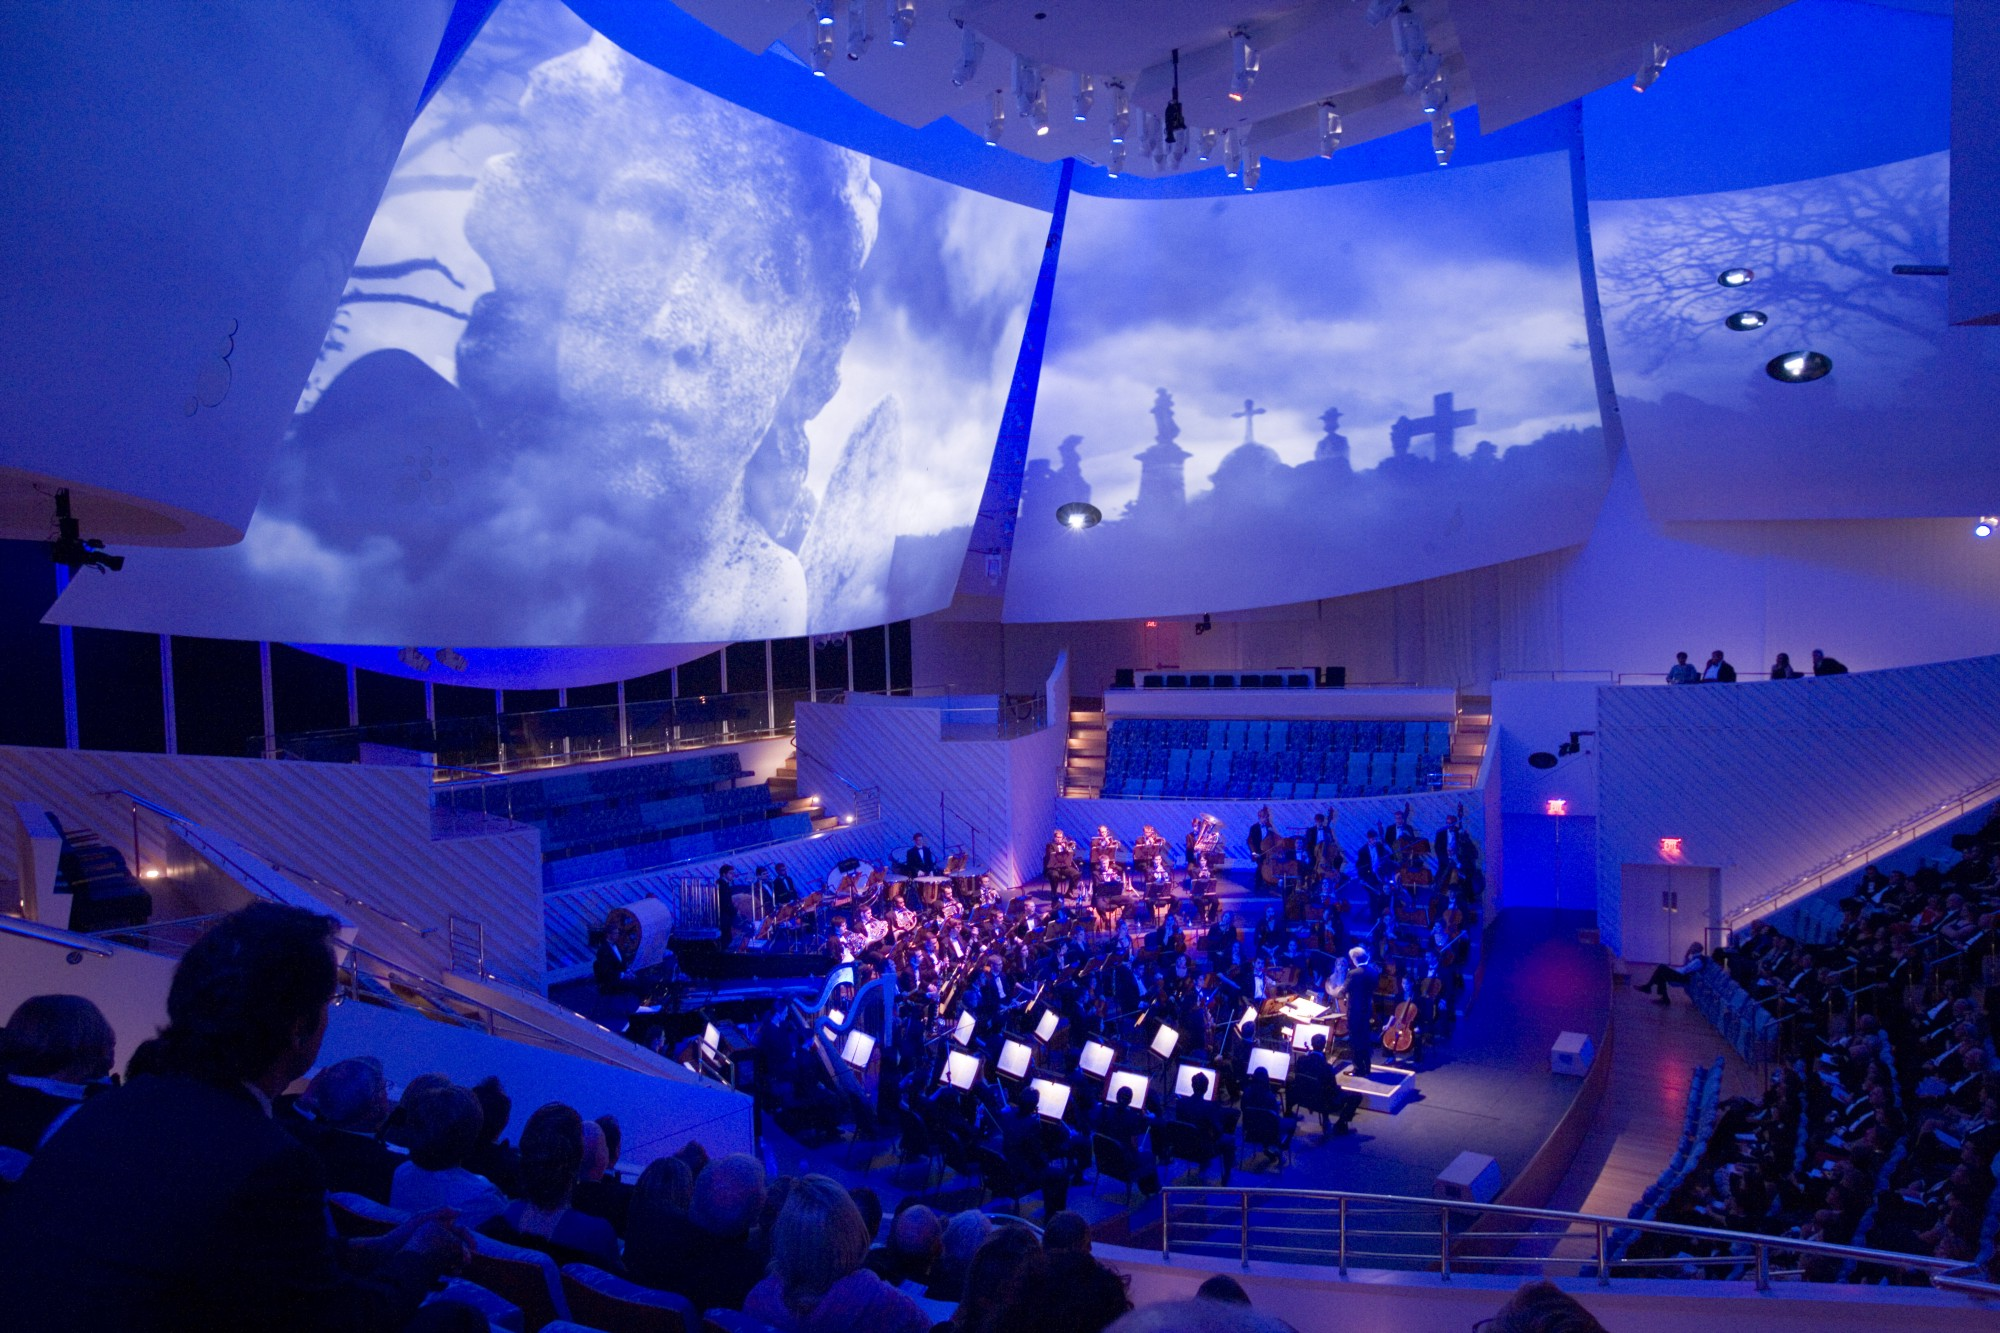 New World Symphony Hall with the giant curved sails above the stage in Frank Gehry's signature twisting and organic style, on which the video is projected. (photo: New World Center)